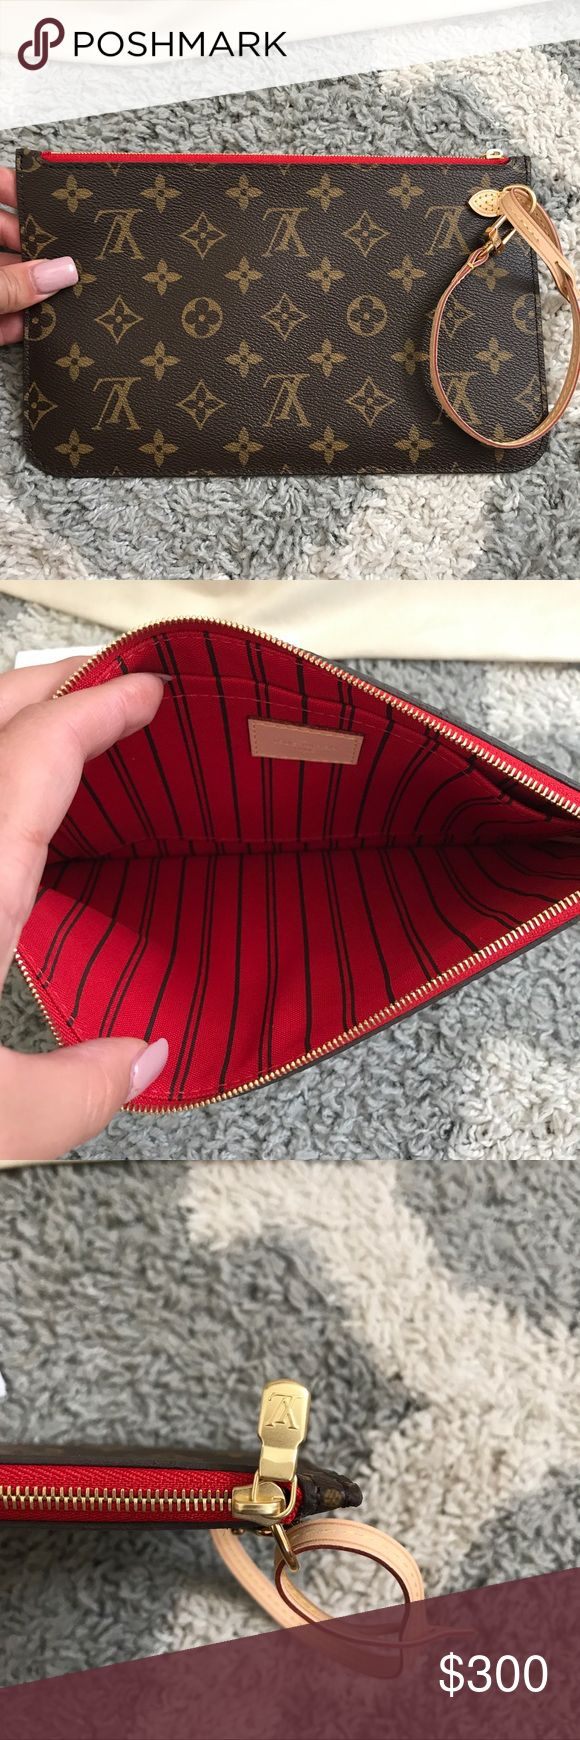 💯Auth BRAND NEW Red Neverfull MM Wristlet 💯 100% Authentic. Brand New Never Used. Comes with Wristlet only . NO TRADES OR OFFERS Louis Vuitton Bags Clutches & Wristlets